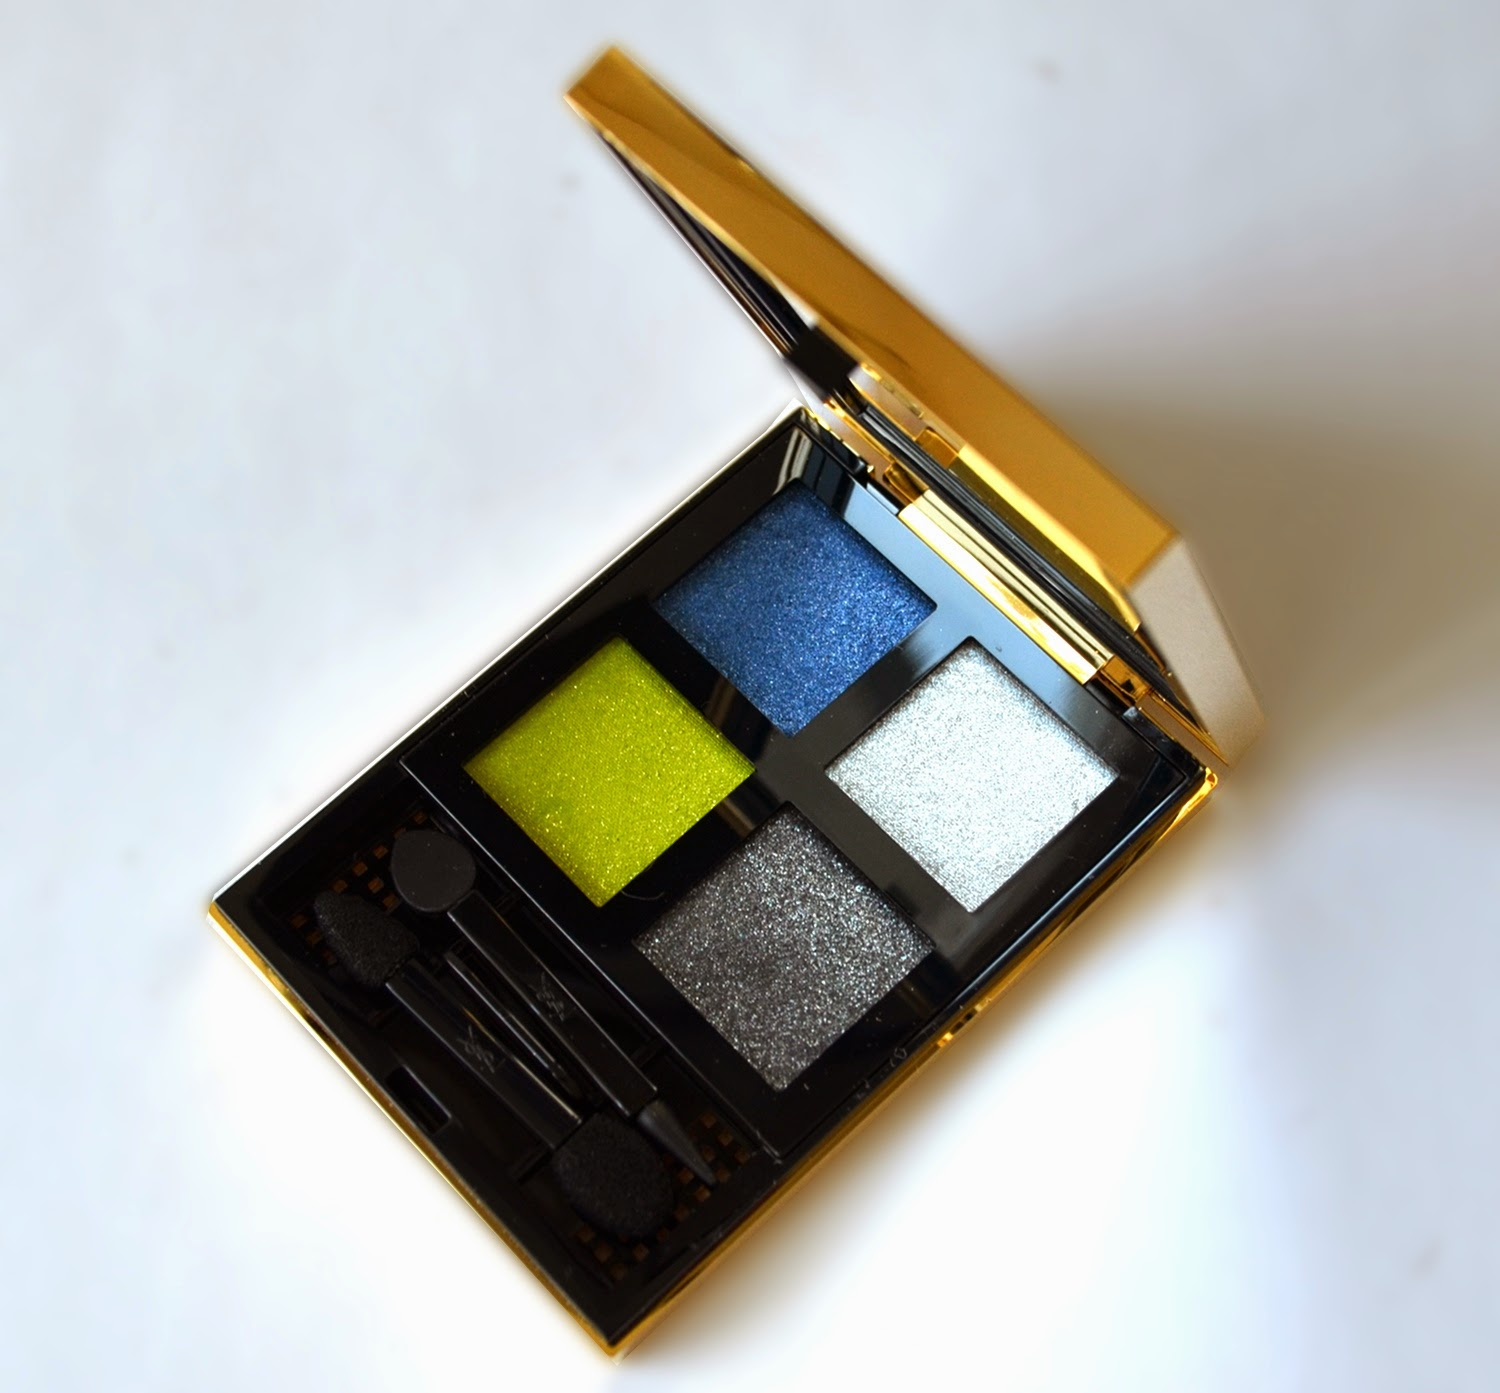 Ysl palette city drive arty wet dry eyeshadows from fallwinter ysl palette city drive arty wet dry eyeshadows there are two wet dry eyeshadow quad released with fall 2013 collection arty and classy ccuart Gallery